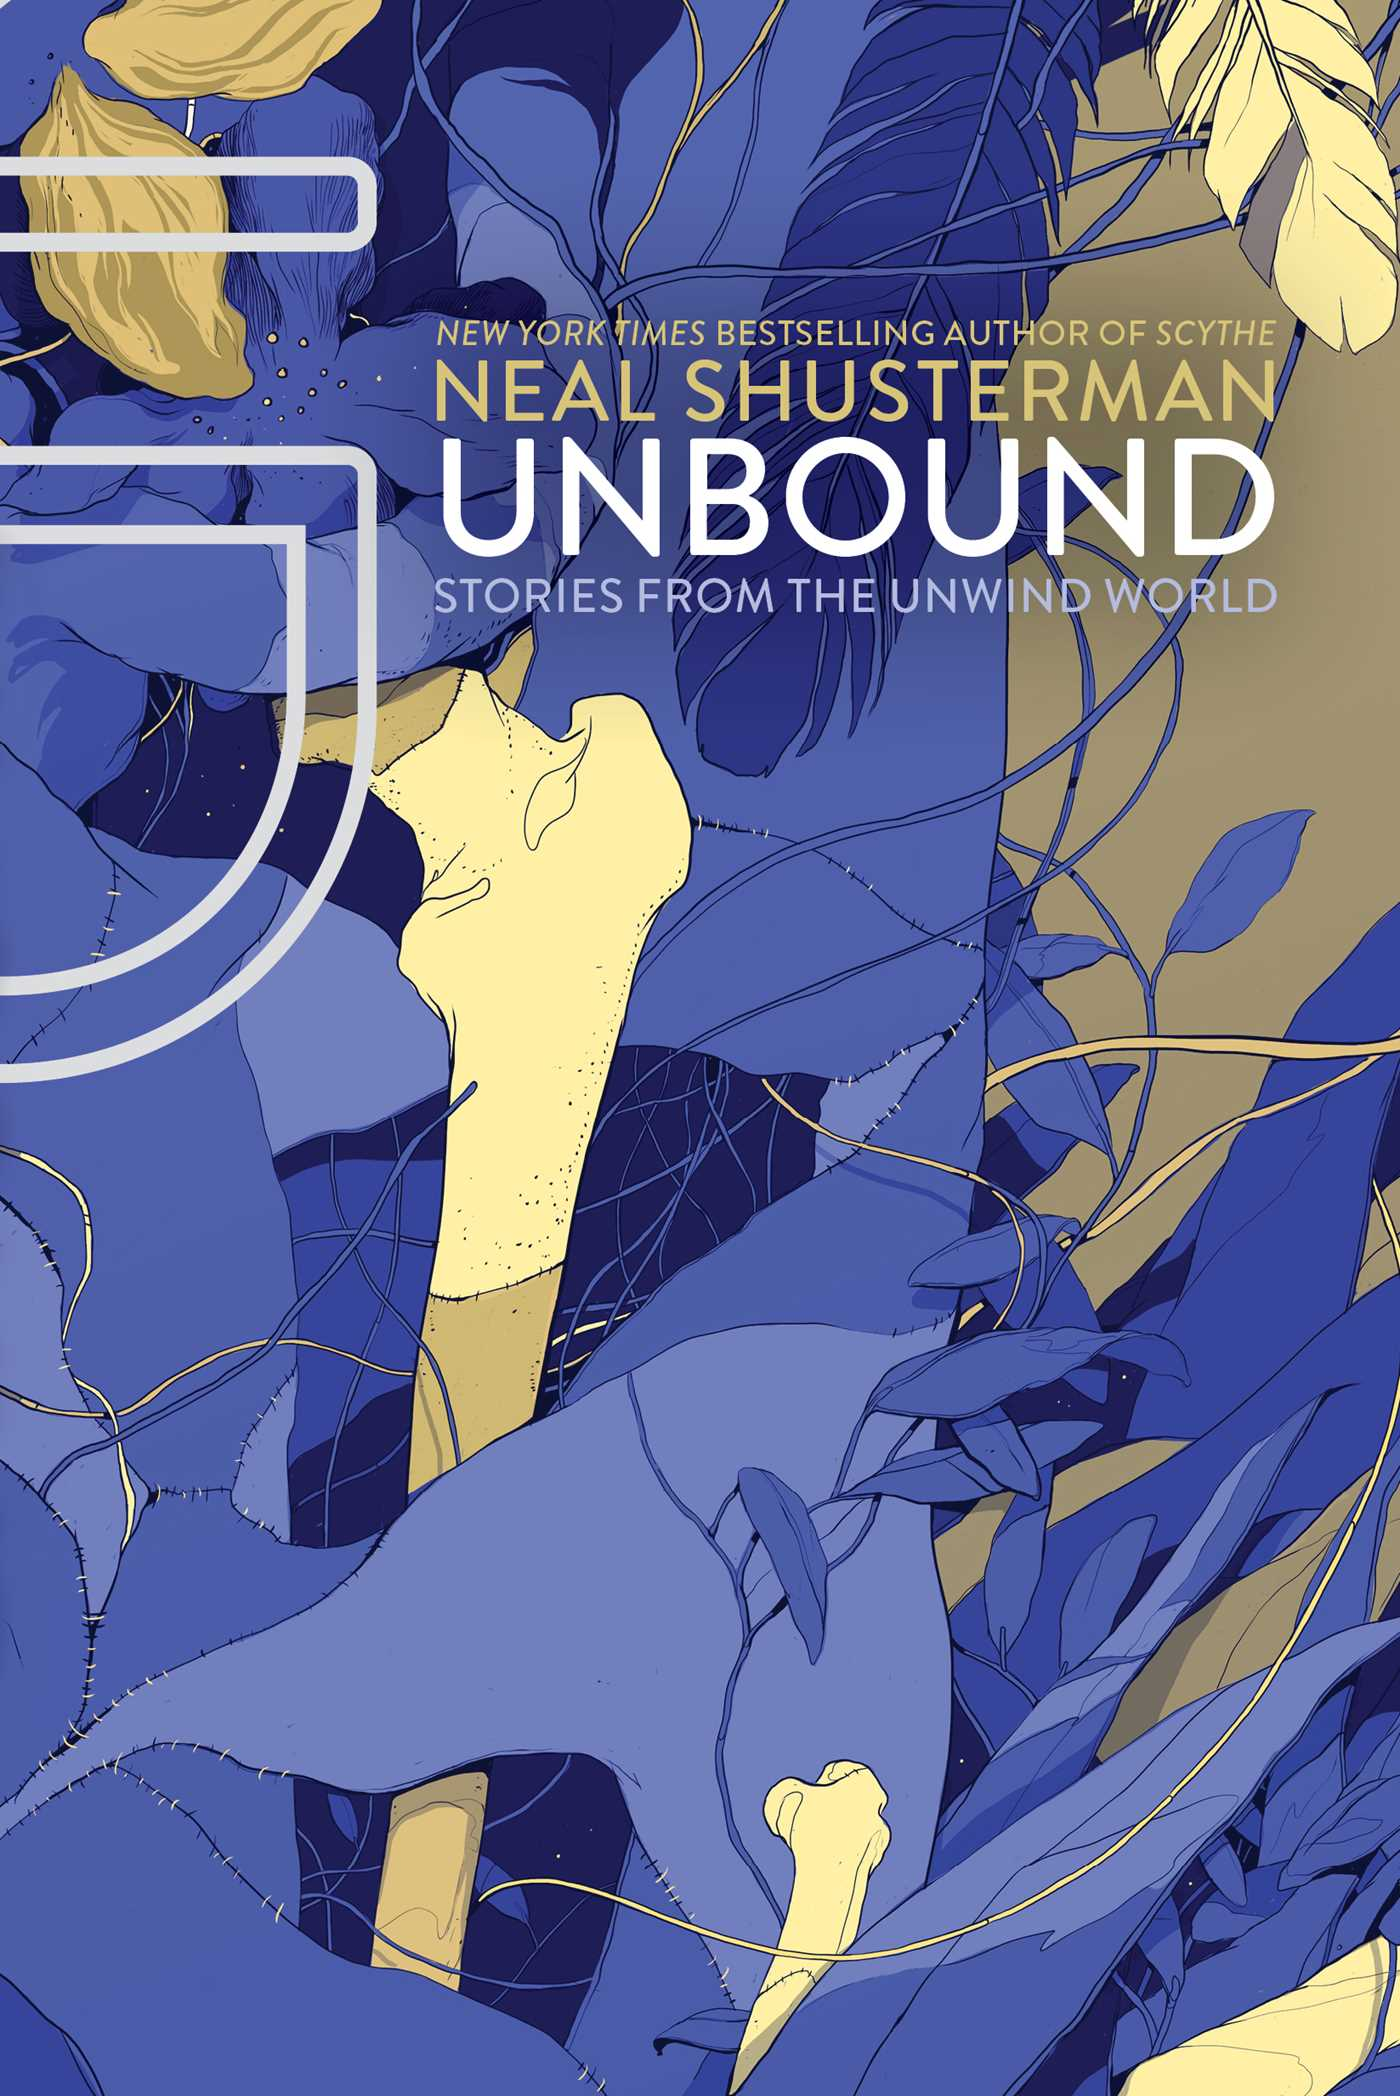 Image result for Unbound by neal shusterman